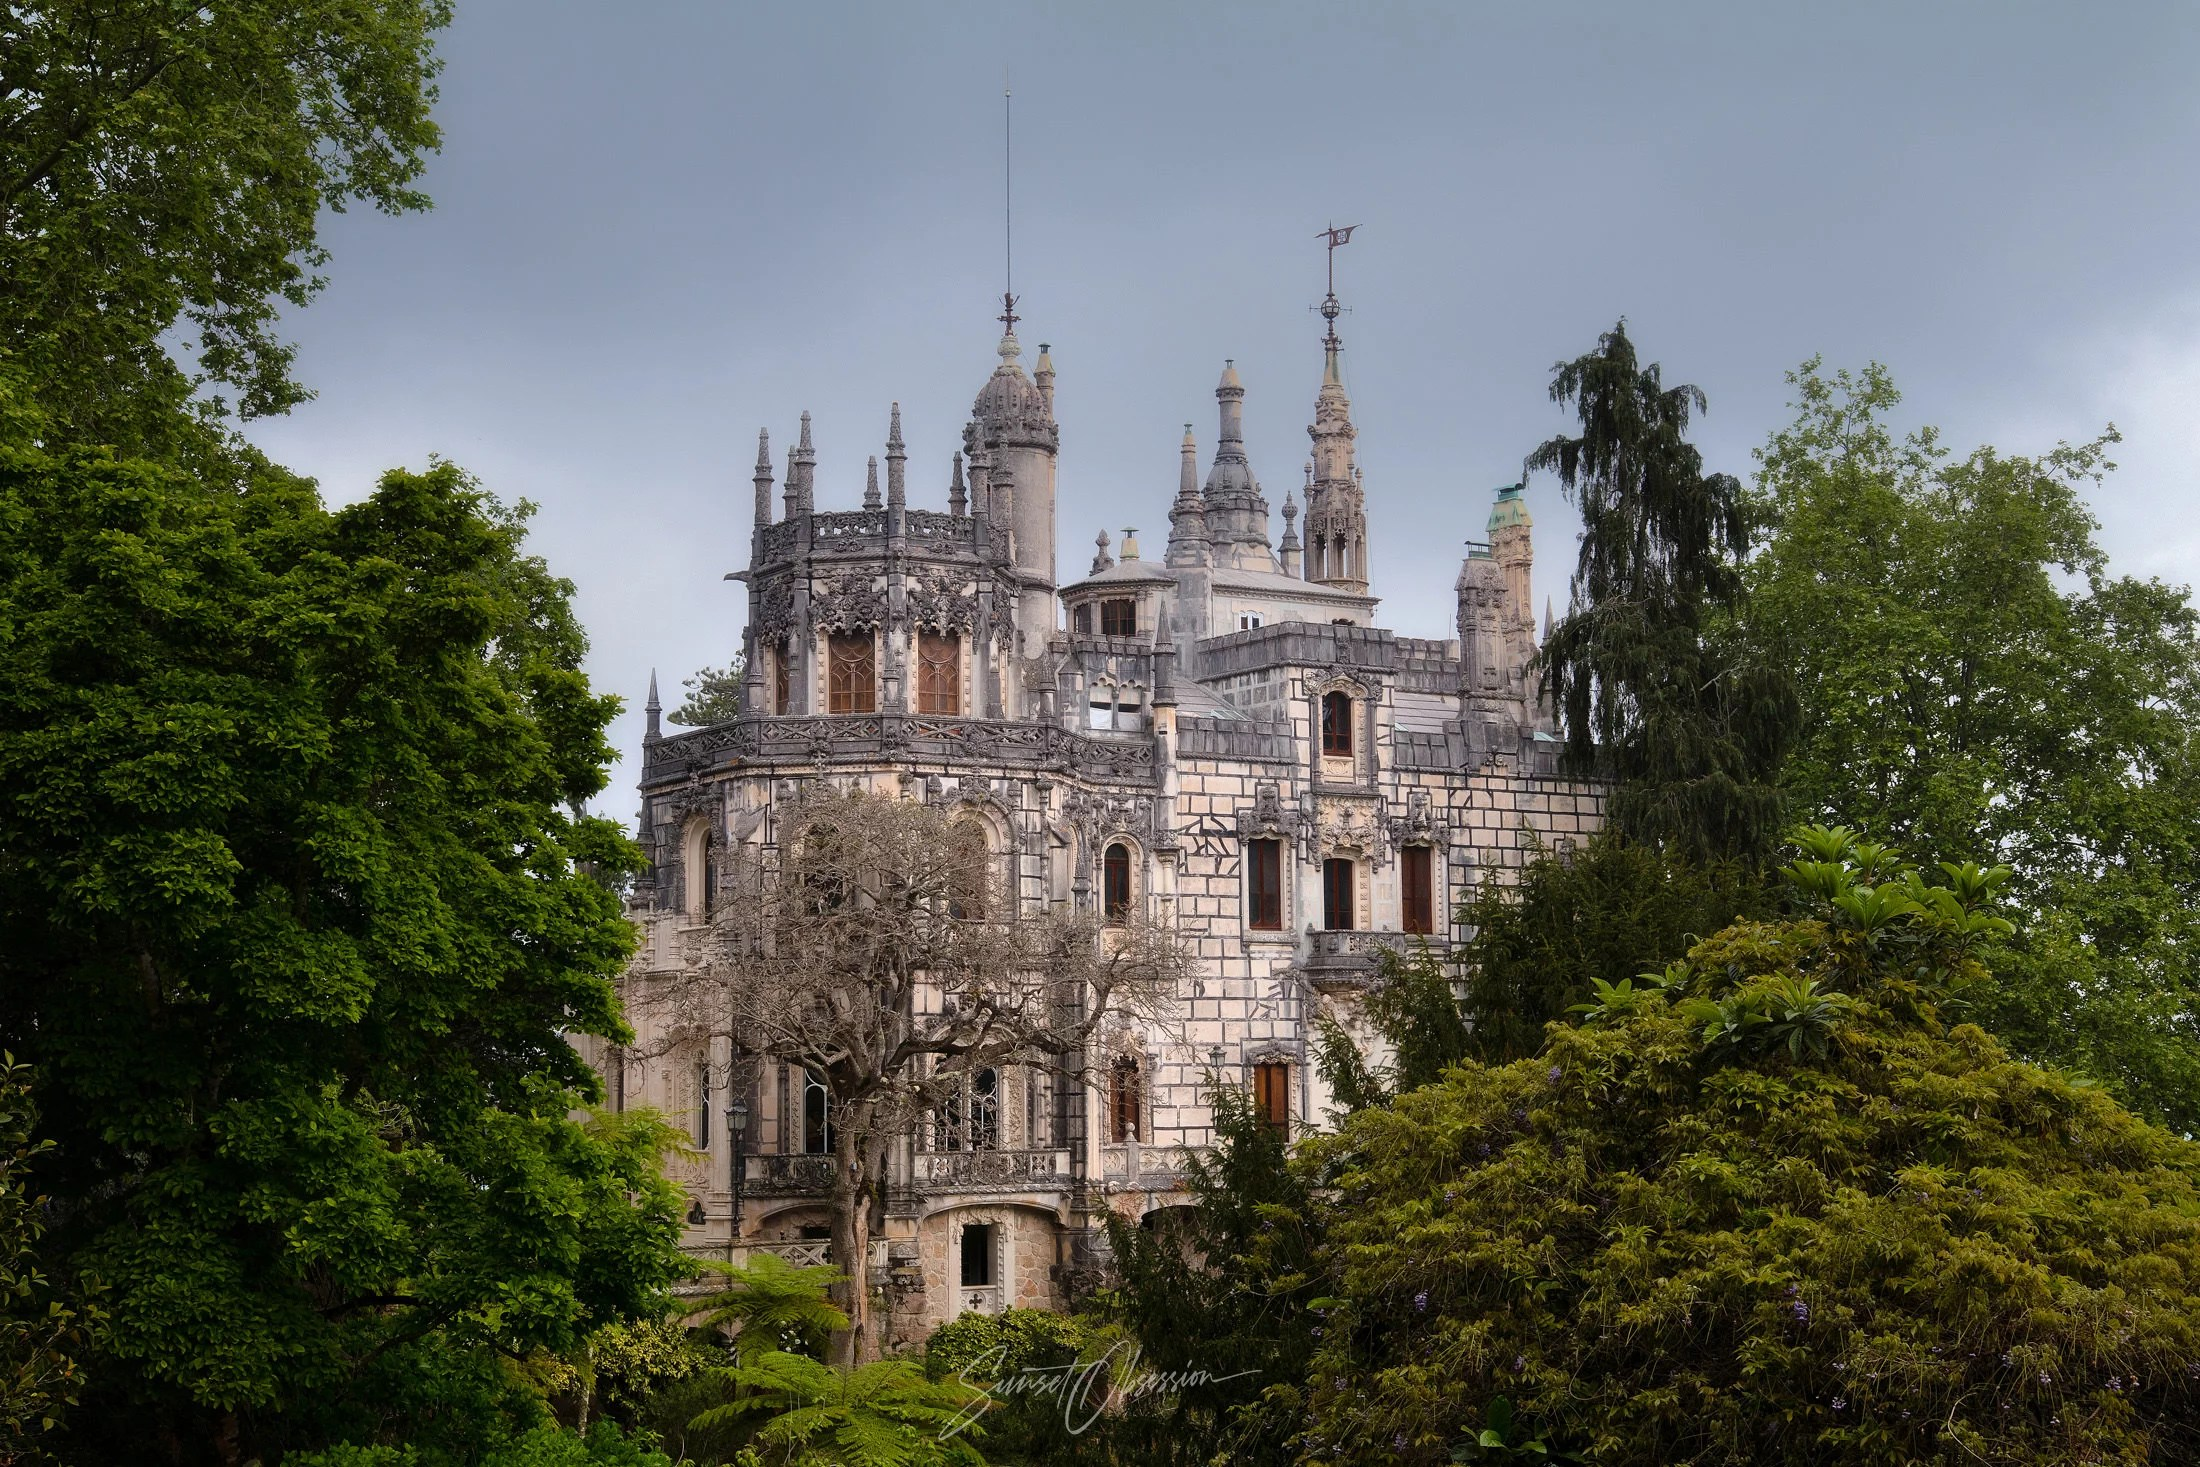 Quinta da Regaleira is a must-see photo spot in Sintra